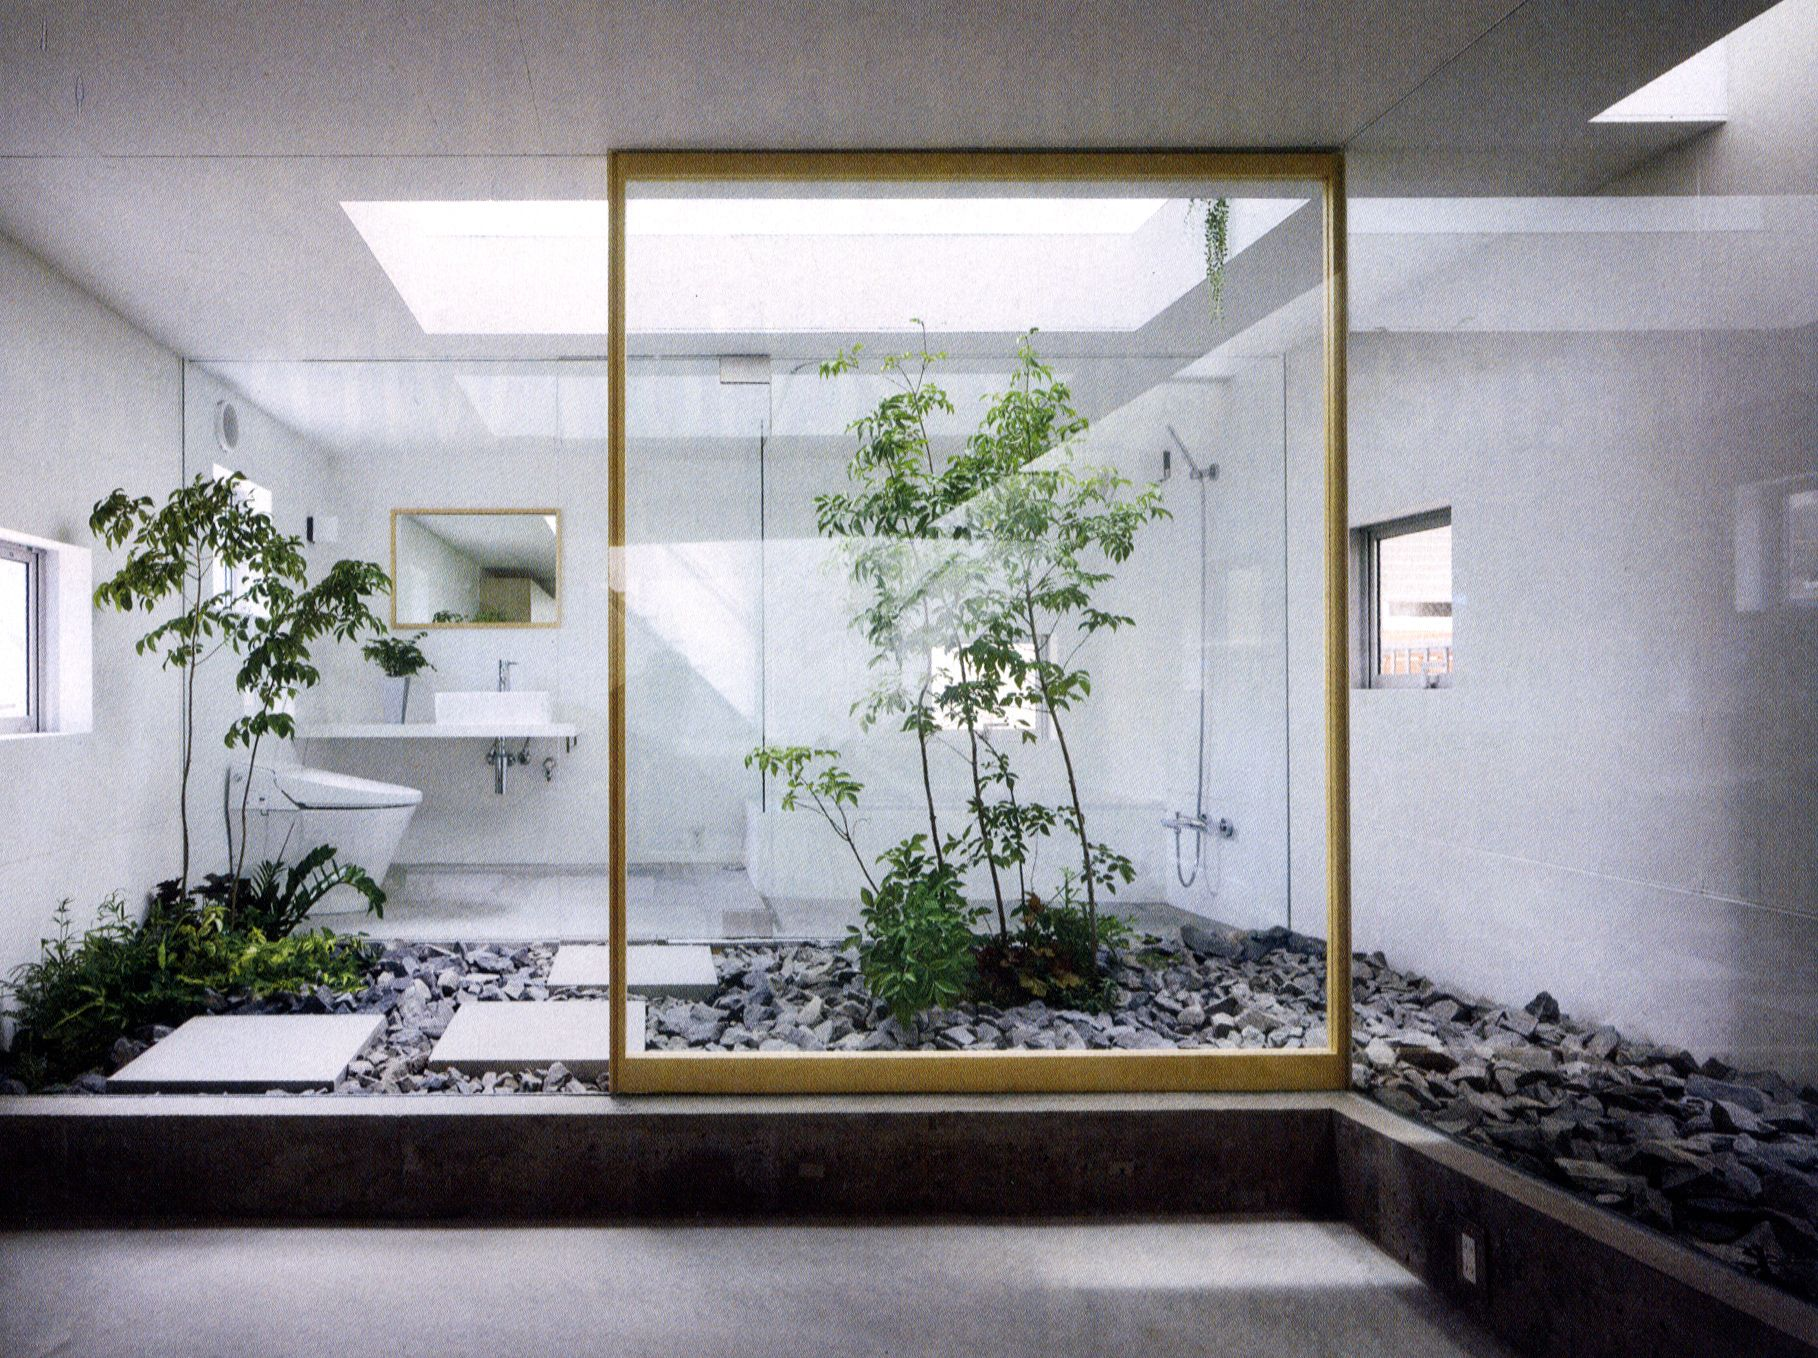 zen garden bathroom for the home design japanese interior rh pinterest com zen garden interior design